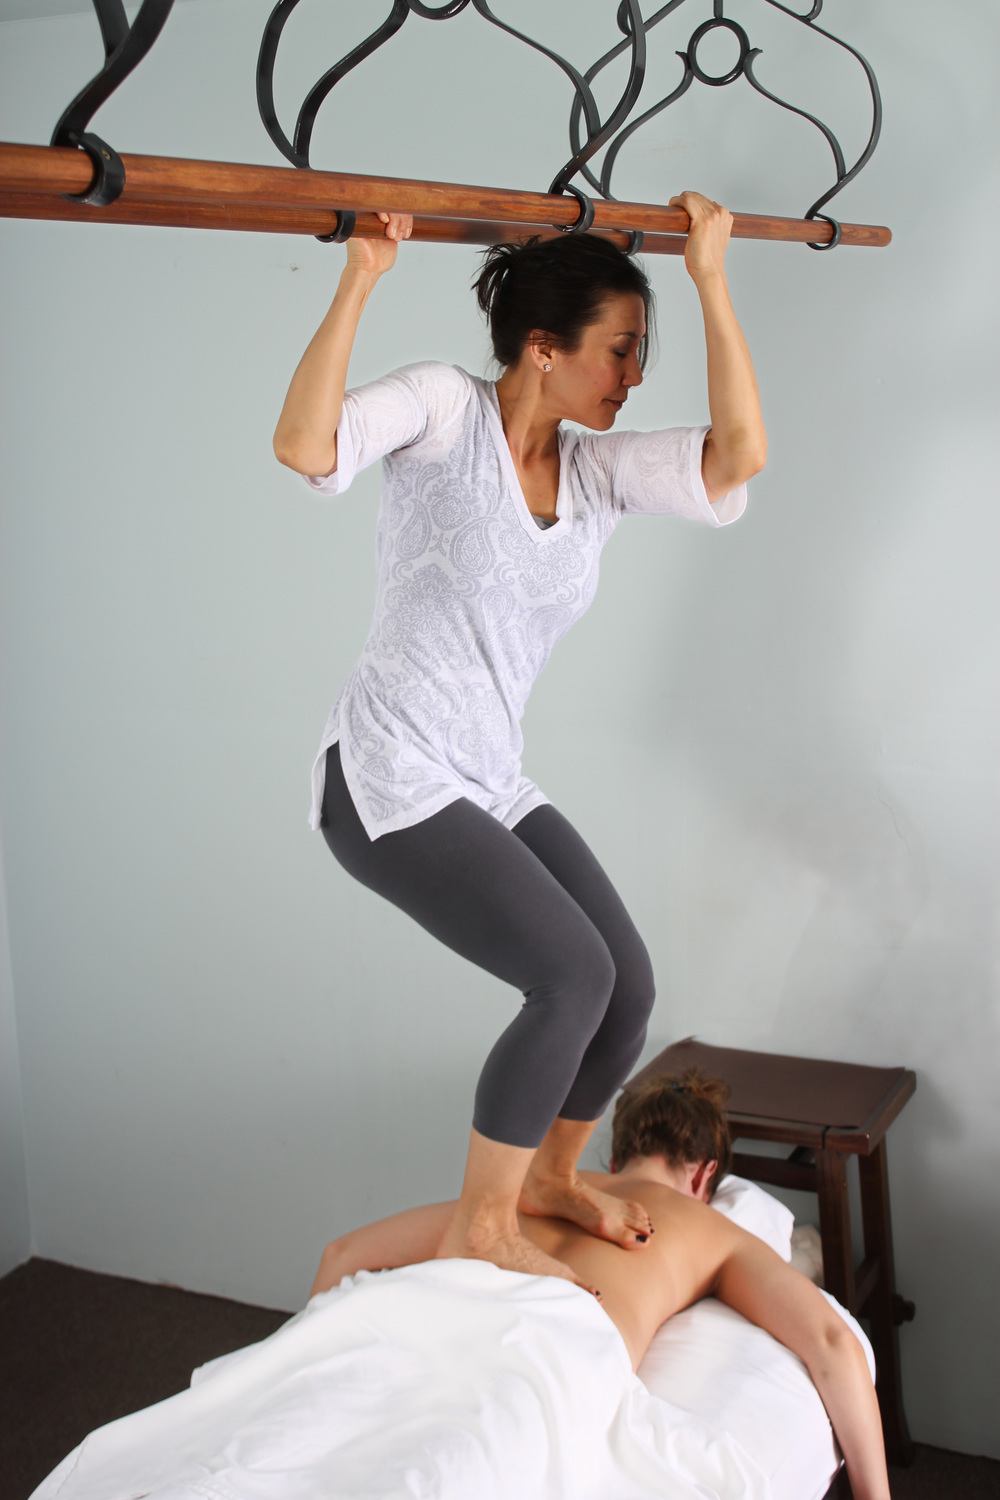 EXTENDED TWO-FOOTED ASHIATSU - $180